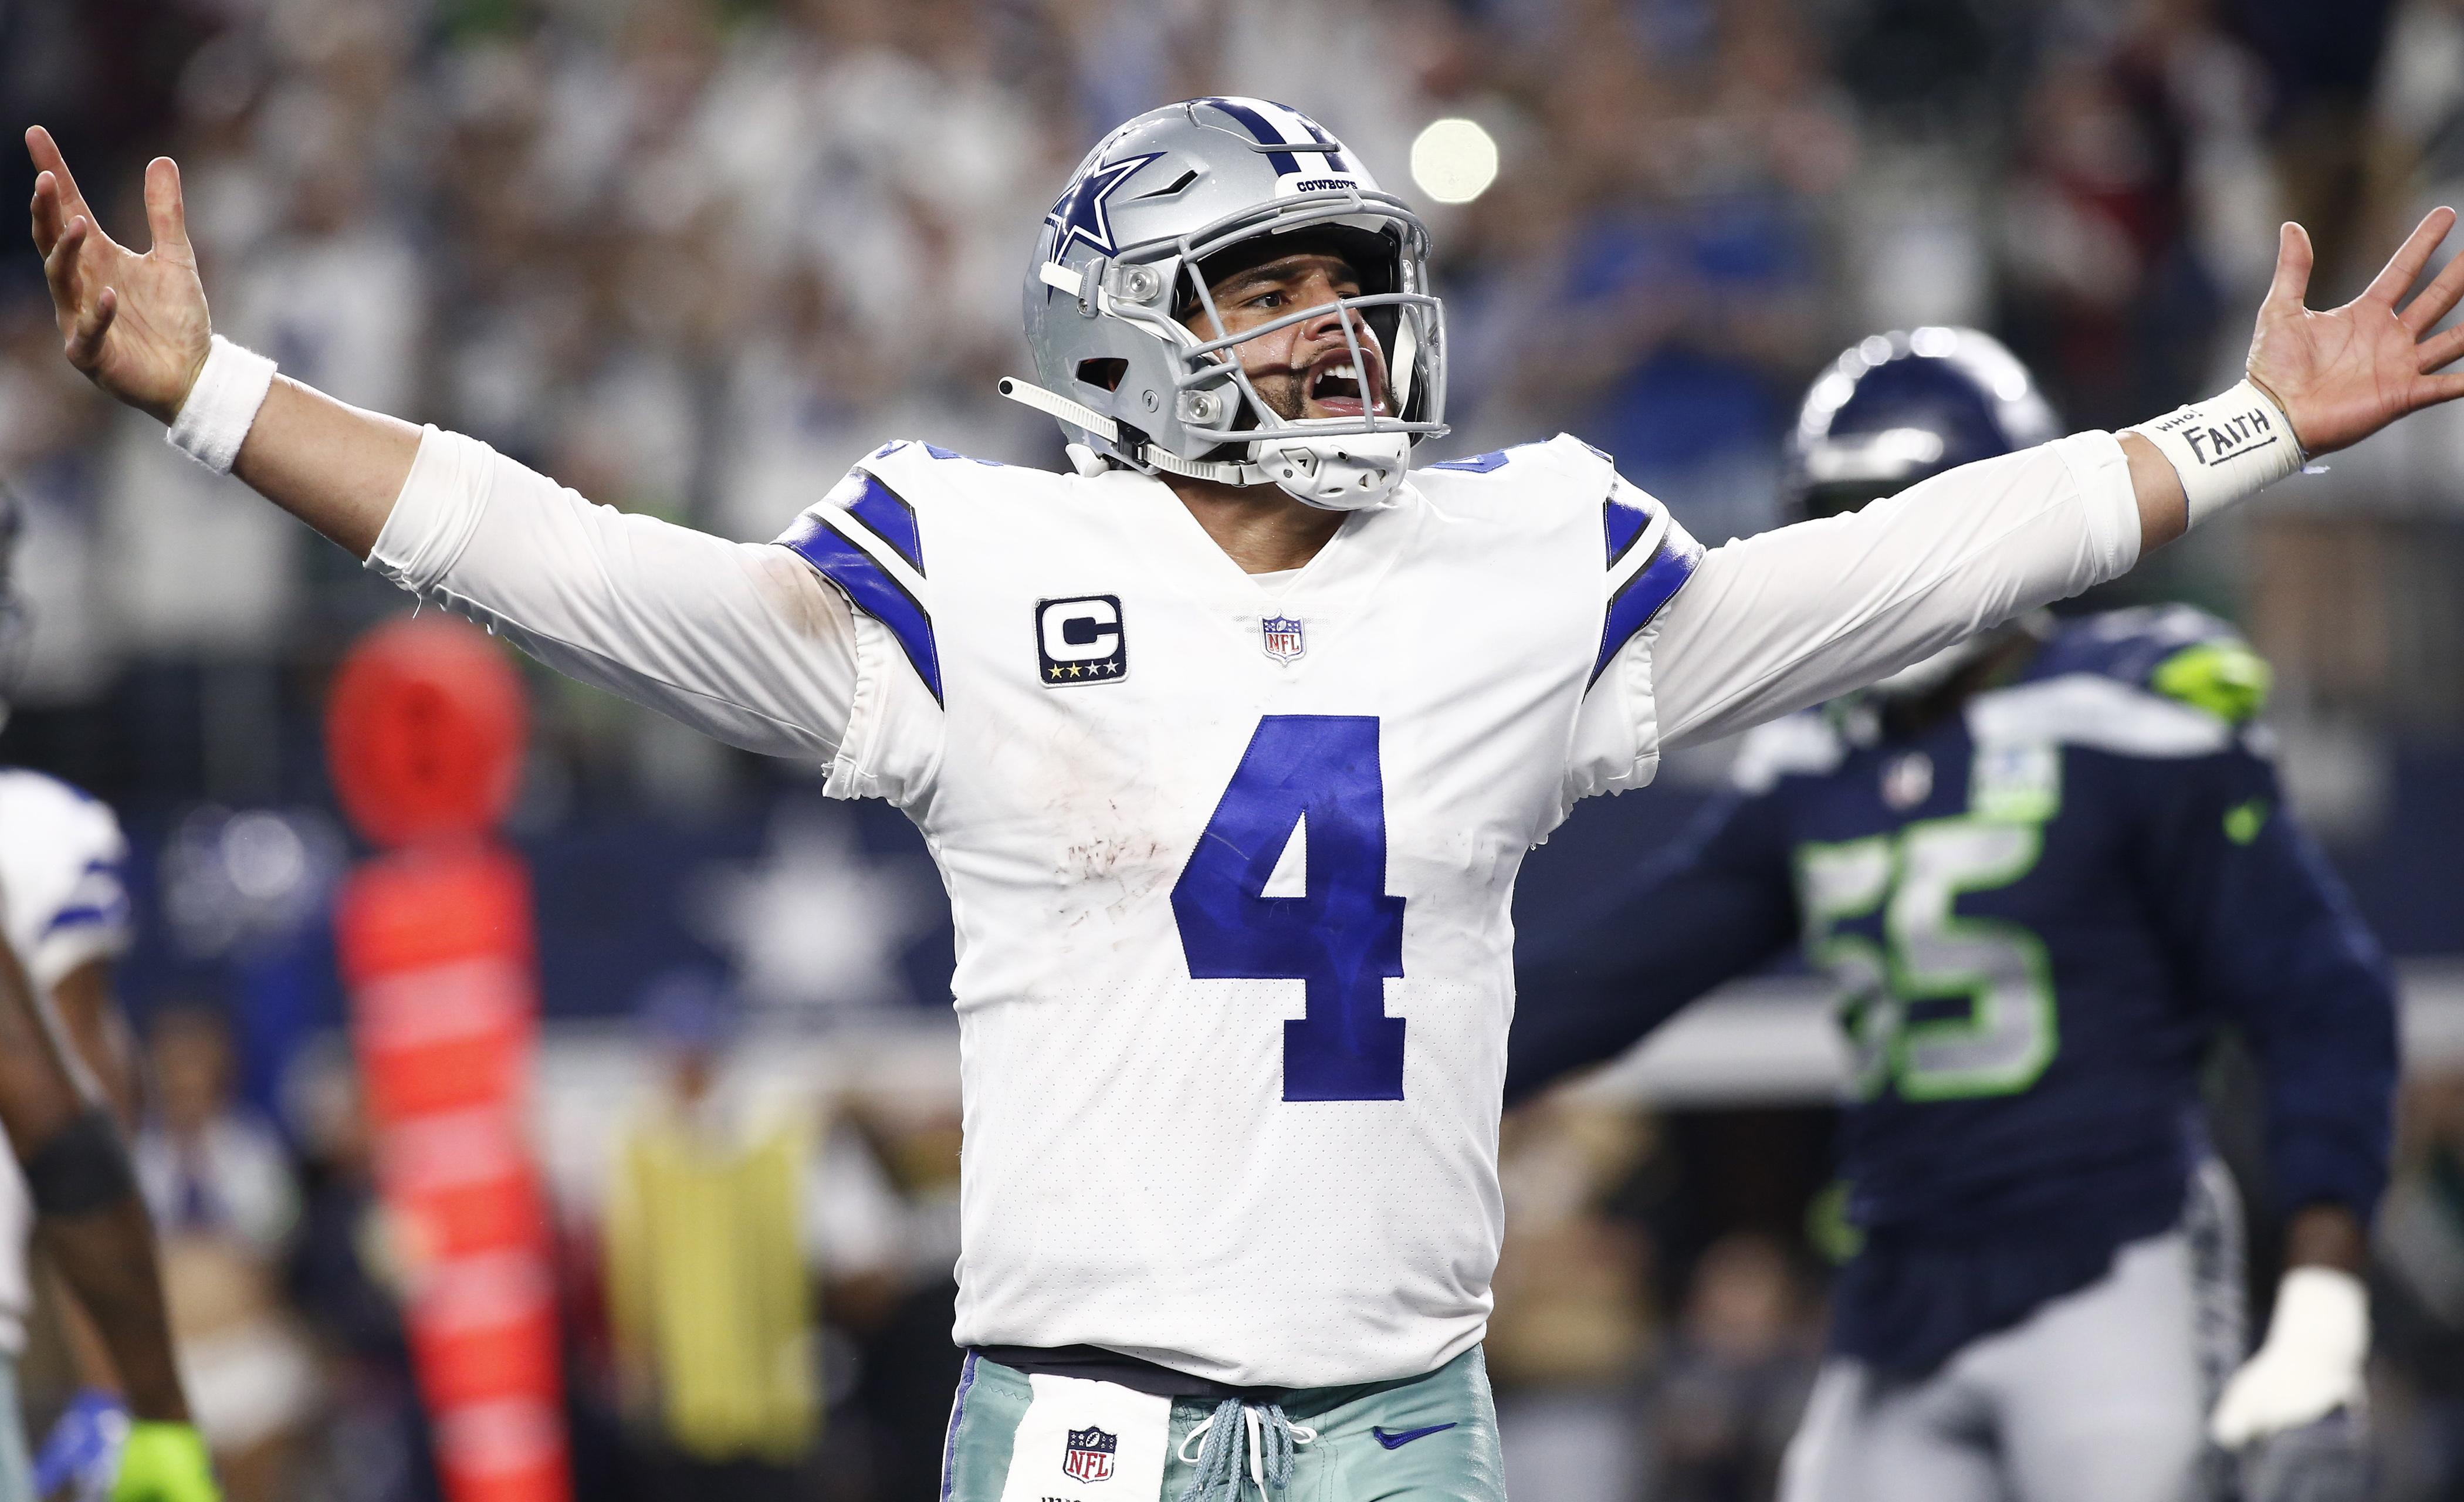 The Dallas Cowboys beat the Seattle Seahawks in their Wild Card game